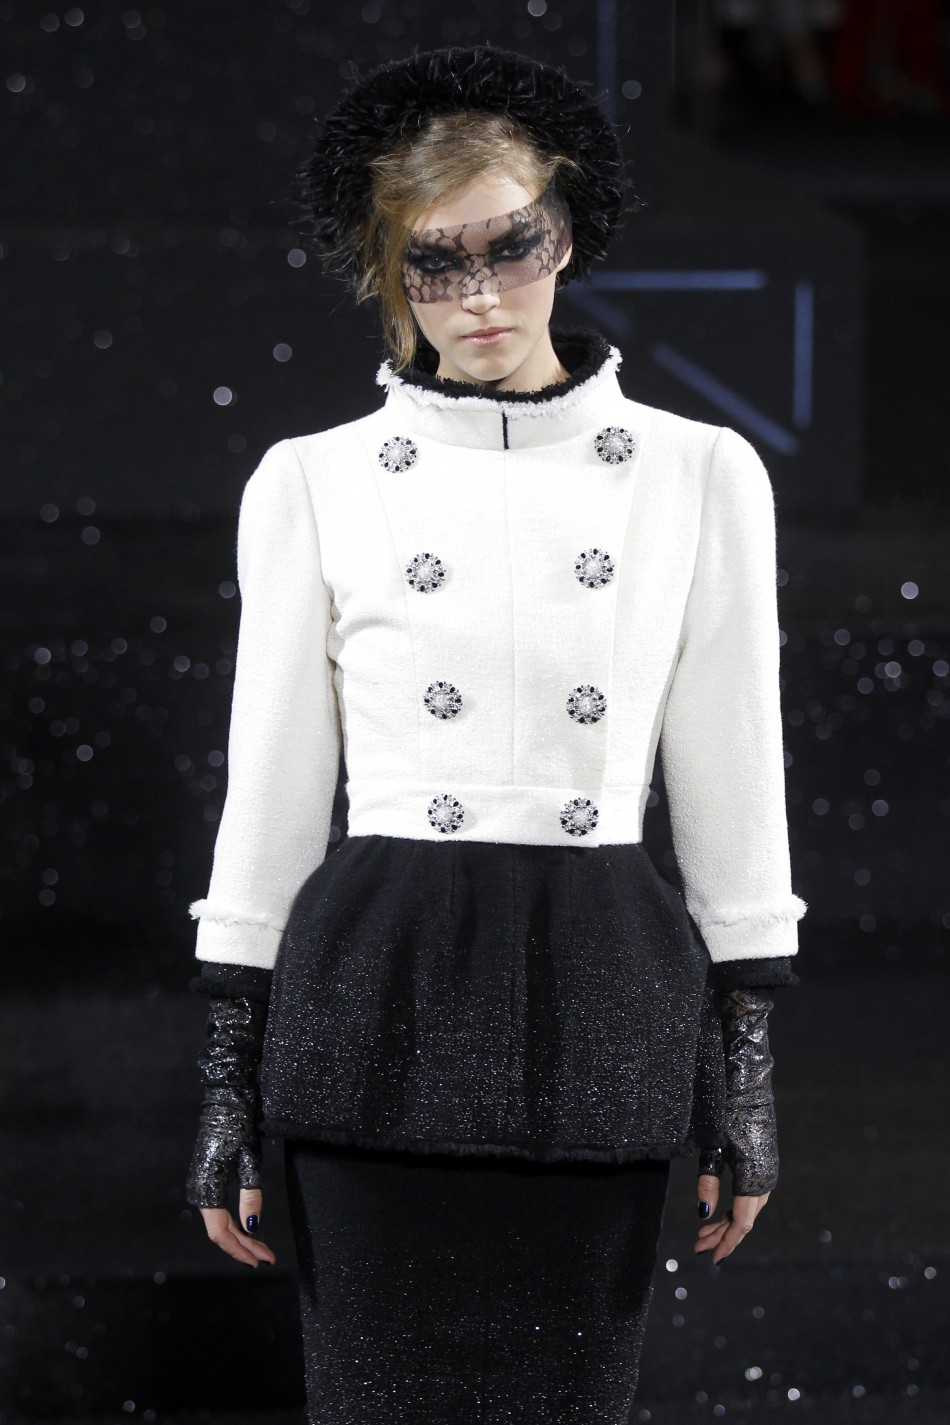 Chanel Haute Couture Fall-Winter 2011/2012 fashion show